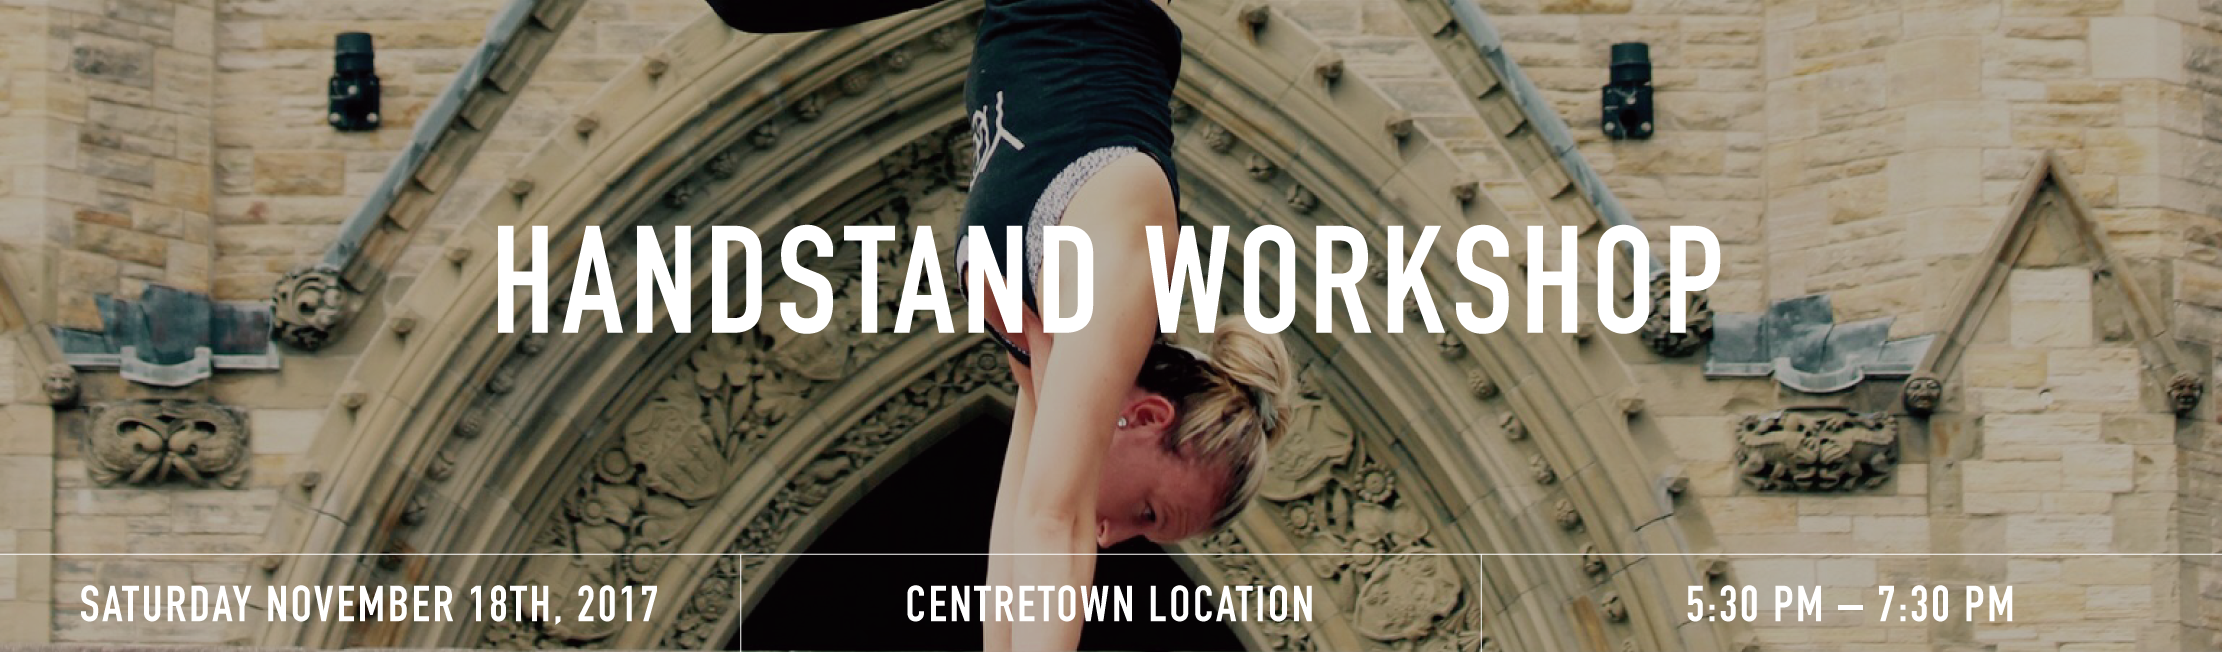 Handstand workshop banner